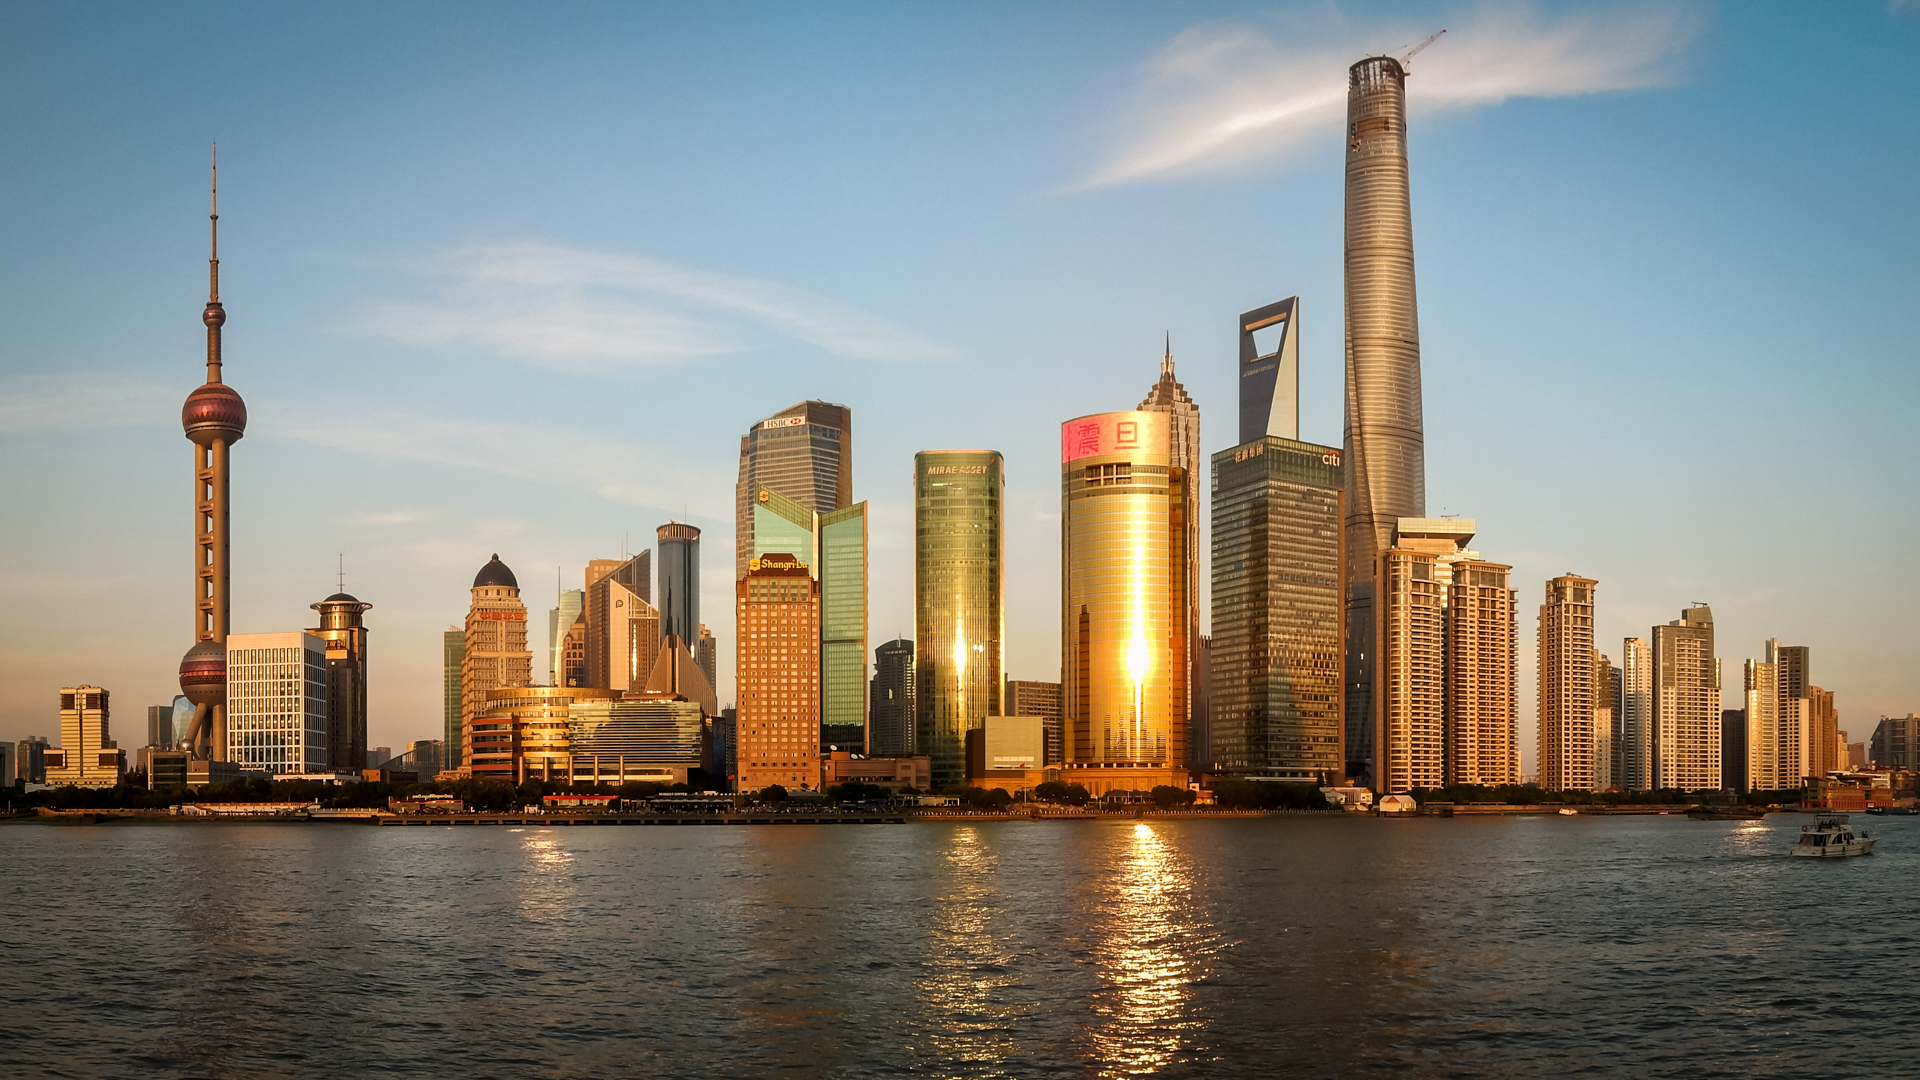 View of Pudong's skyline in Shanghai. Image by Pjt56 ,derivative work by NR and licensed under CC BY-SA 4.0.